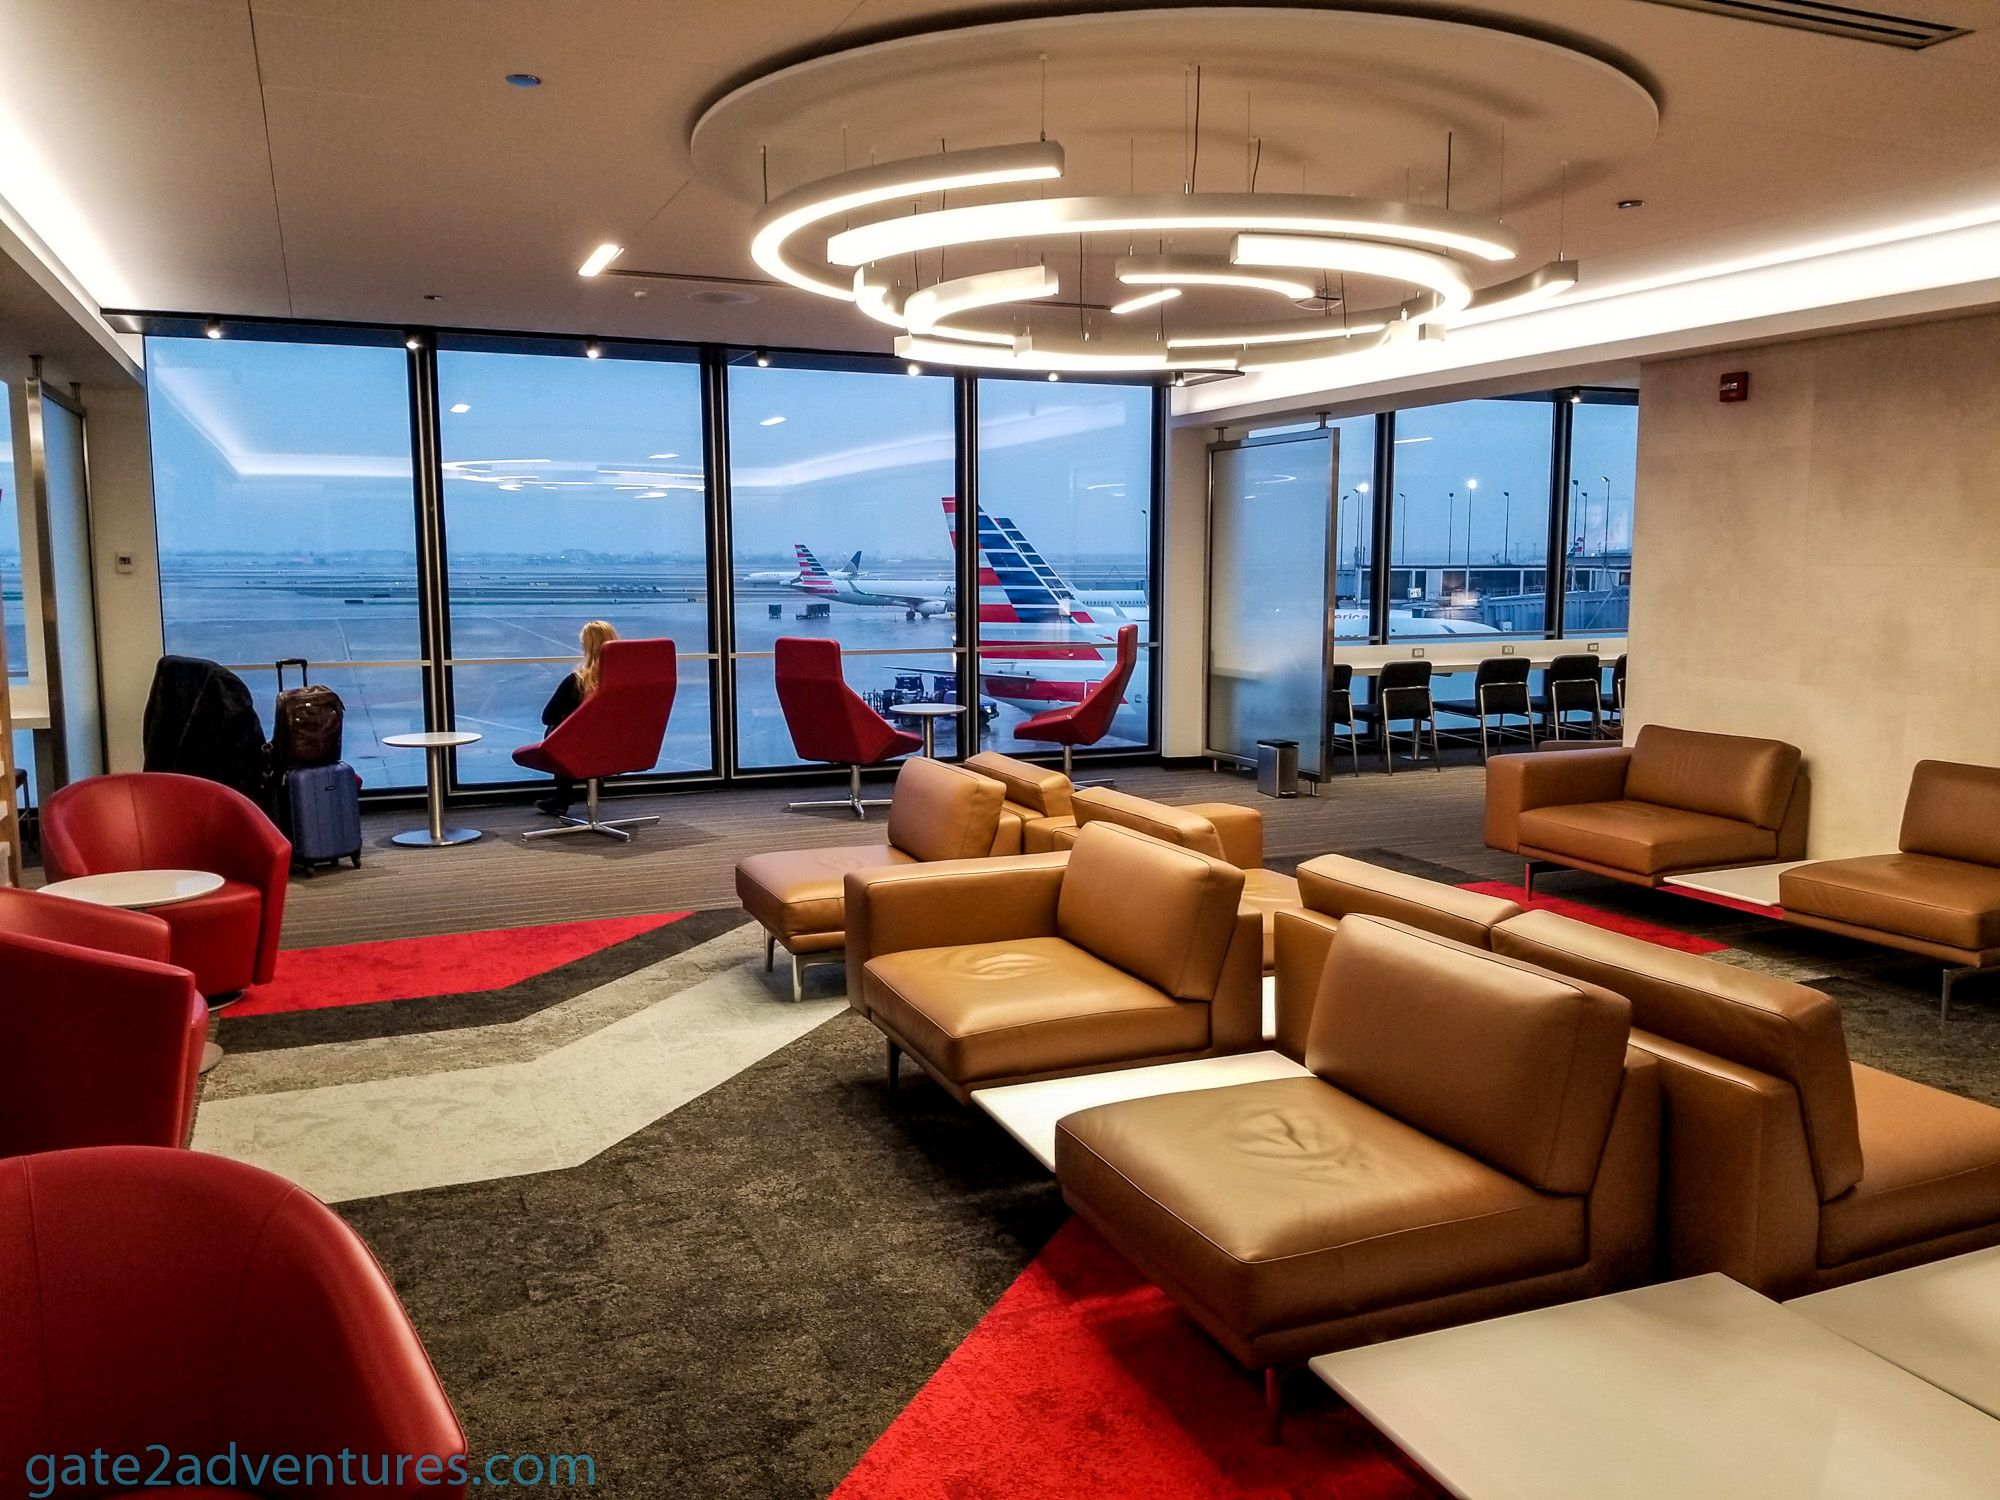 Lounge Review: American Airlines Flagship Lounge Chicago O'Hare (ORD) – Terminal 3